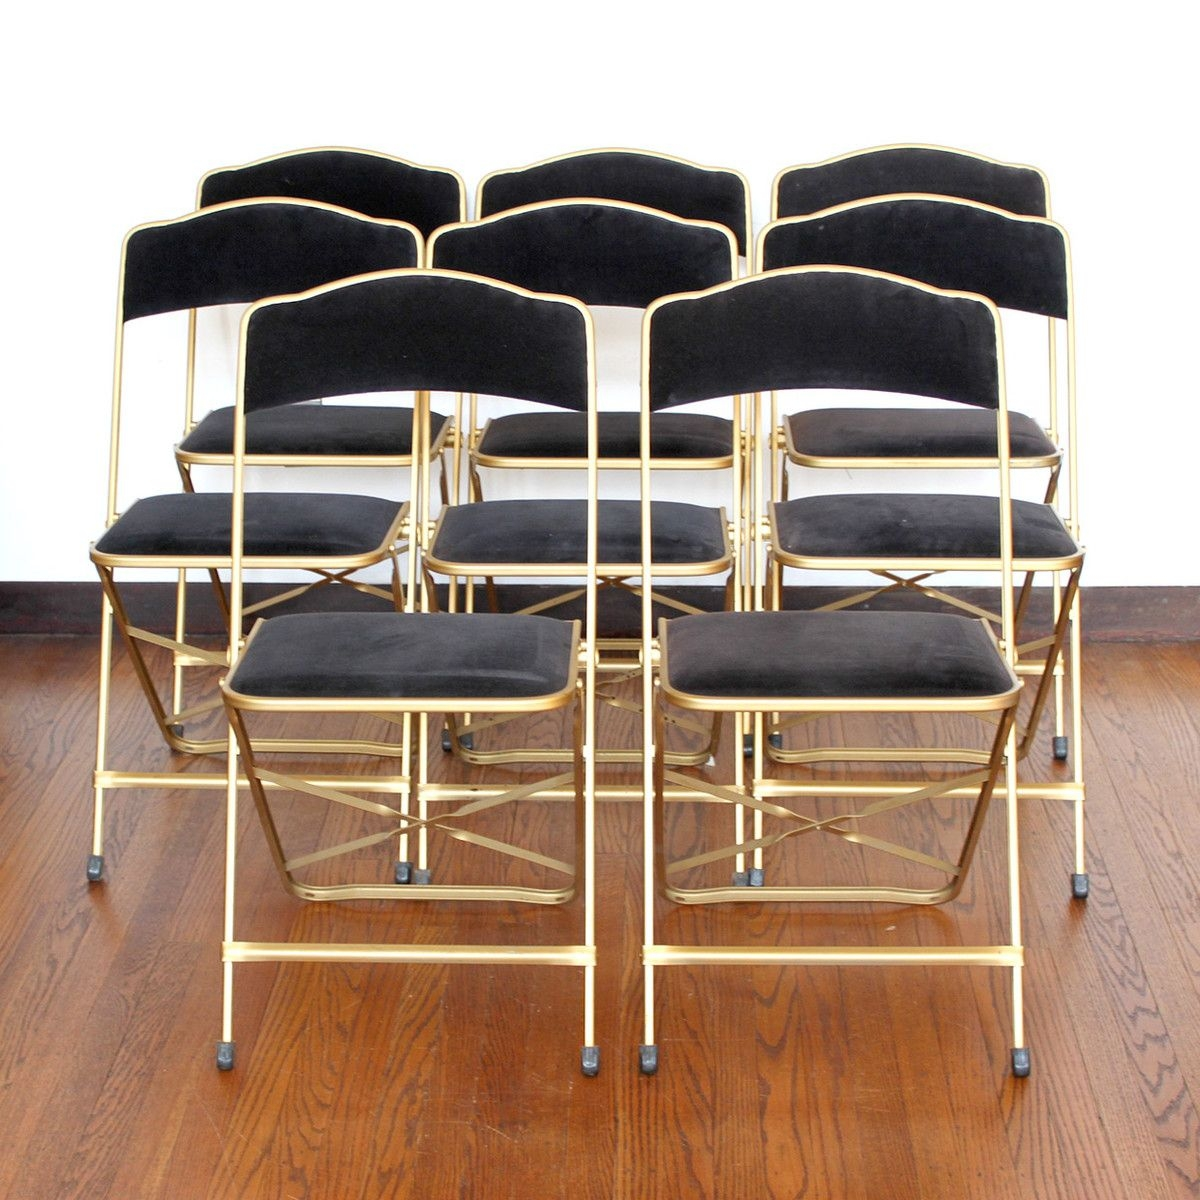 Gold Folding Chairs